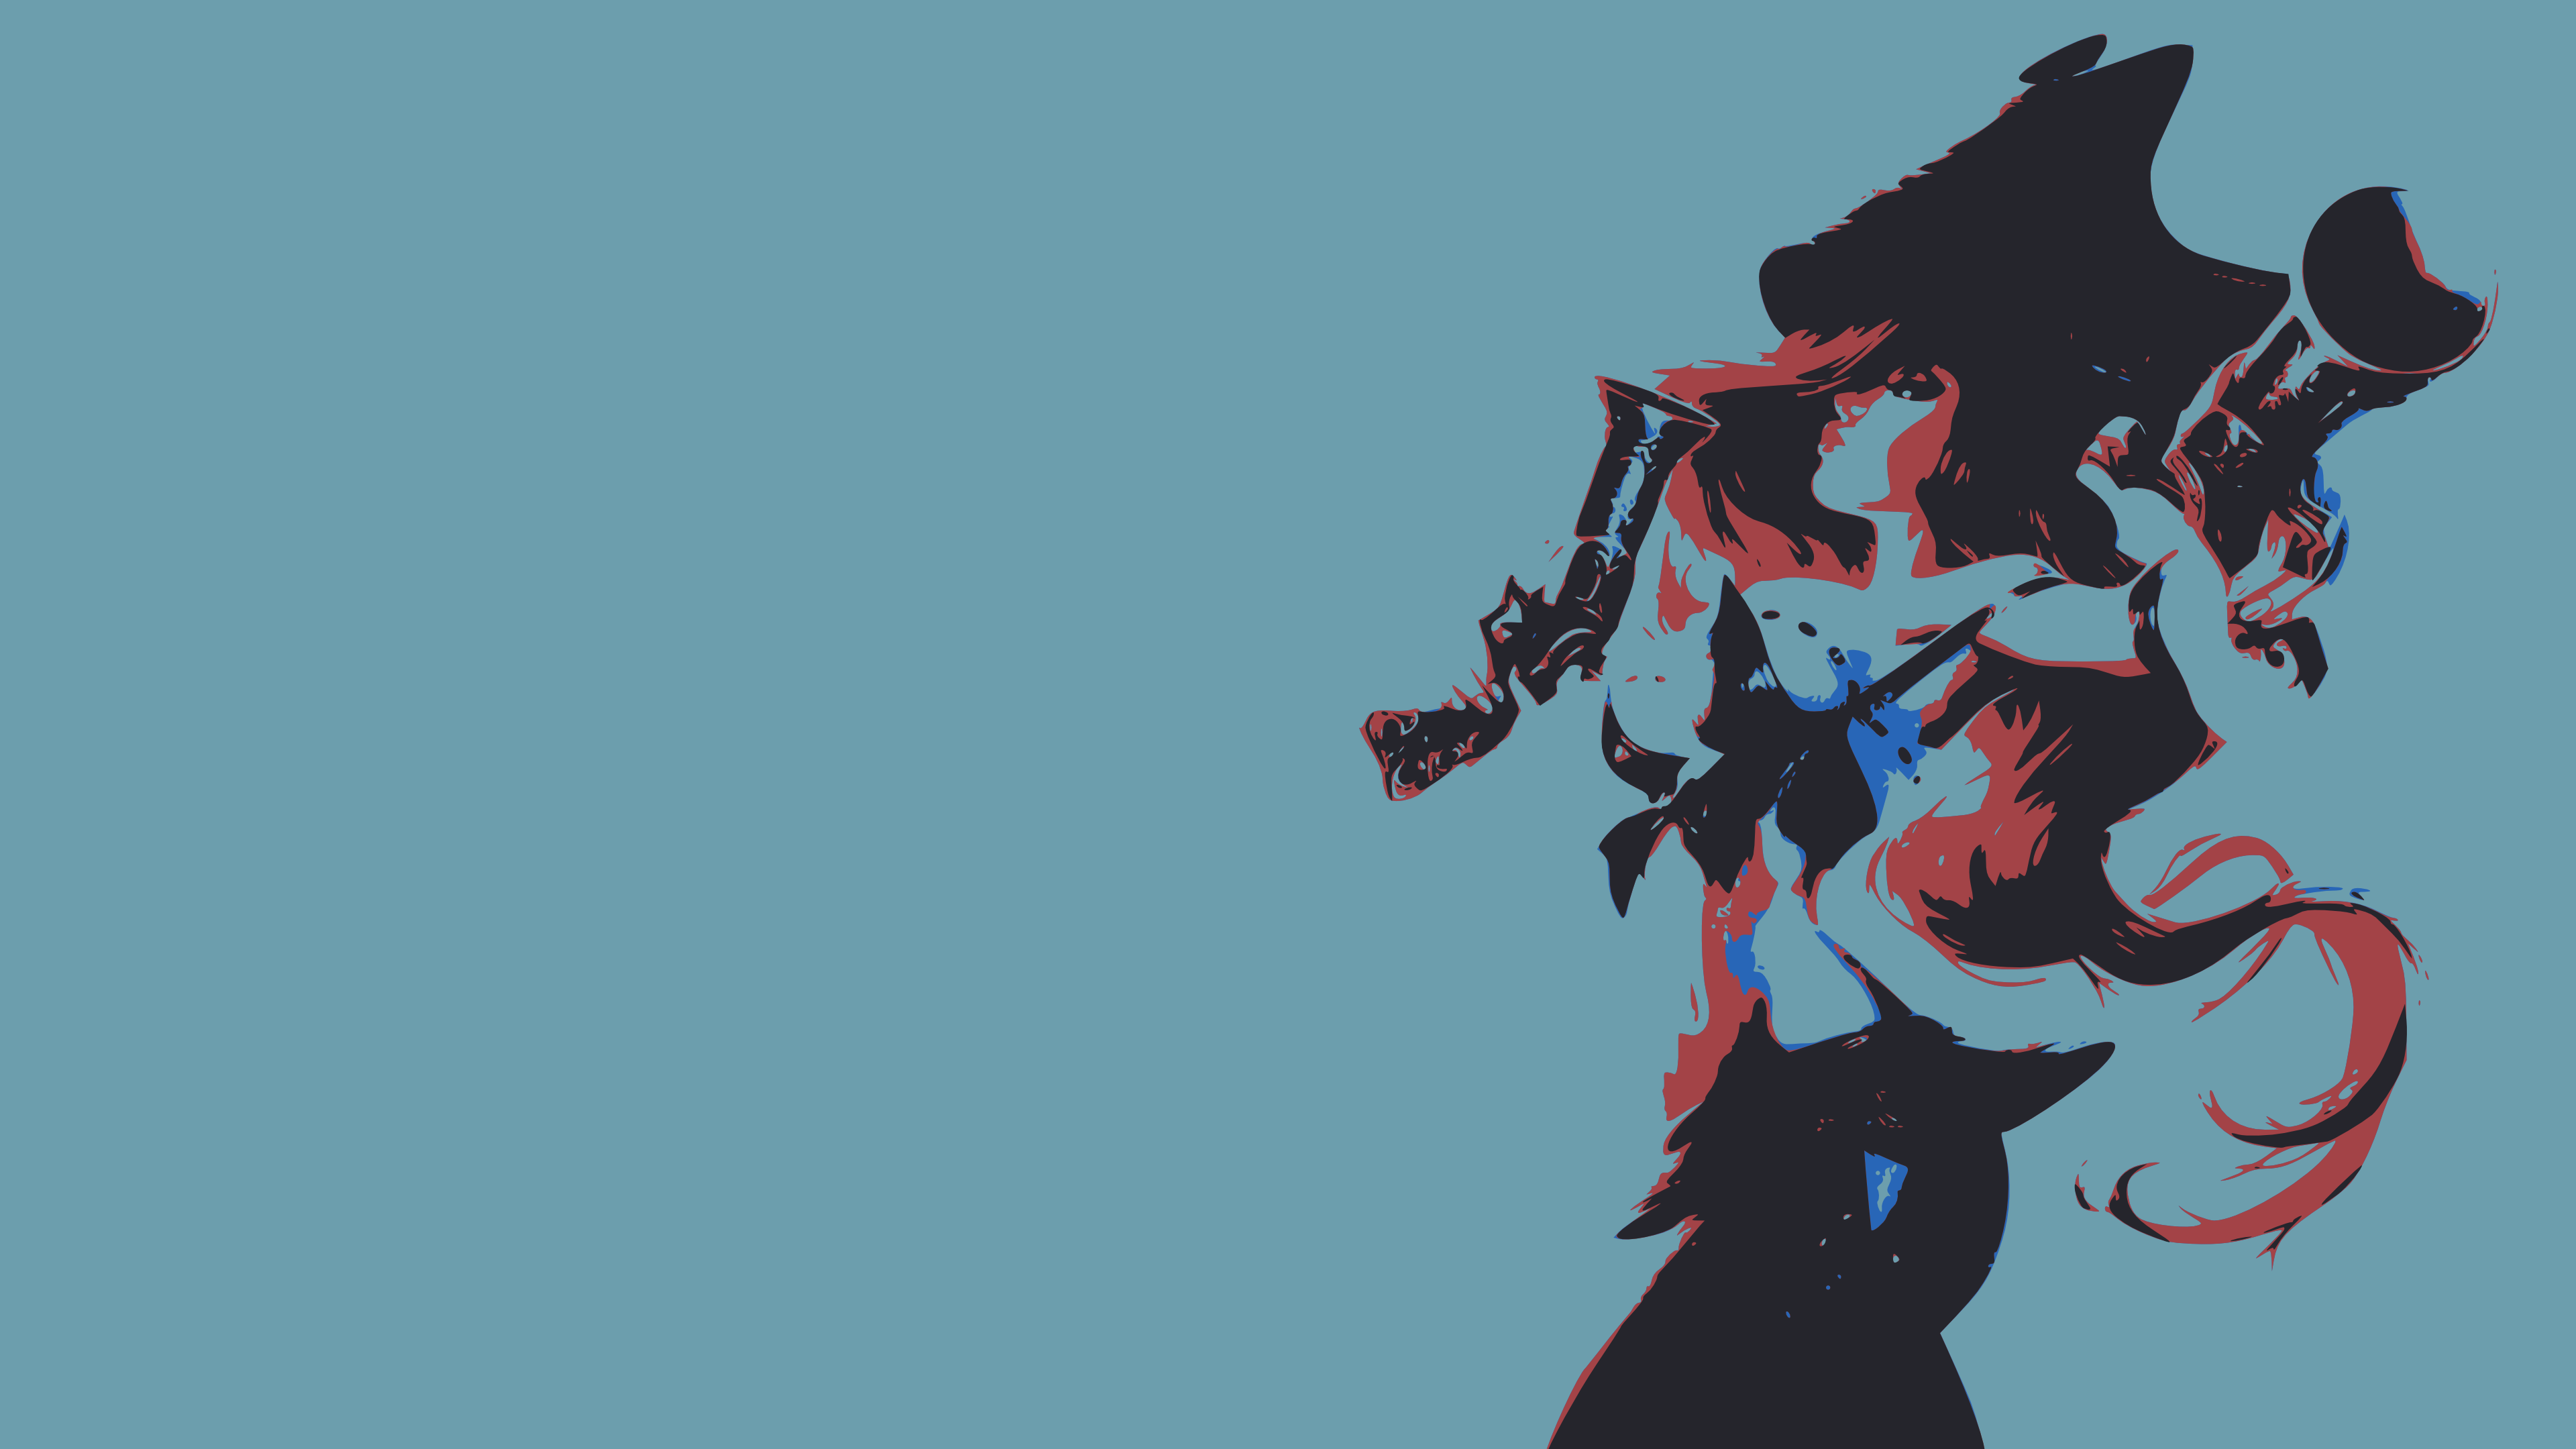 miss fortune minimalistic wallpaper by bohitargep on